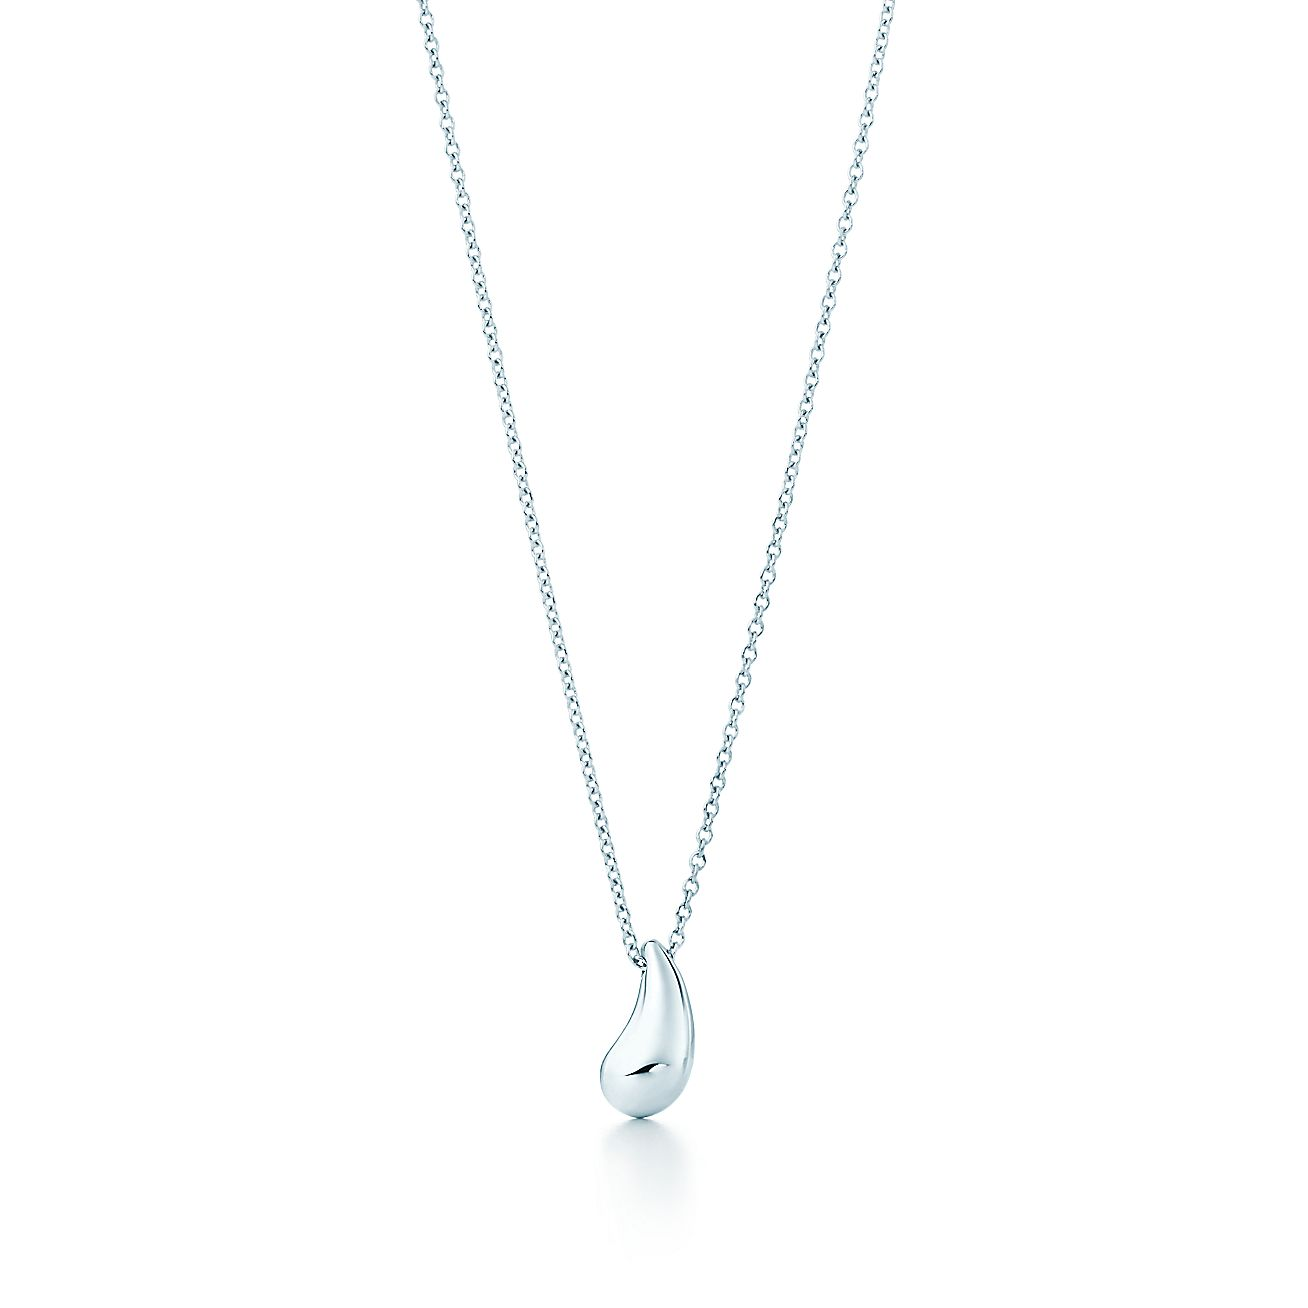 necklace en teardrop pendant penningtons